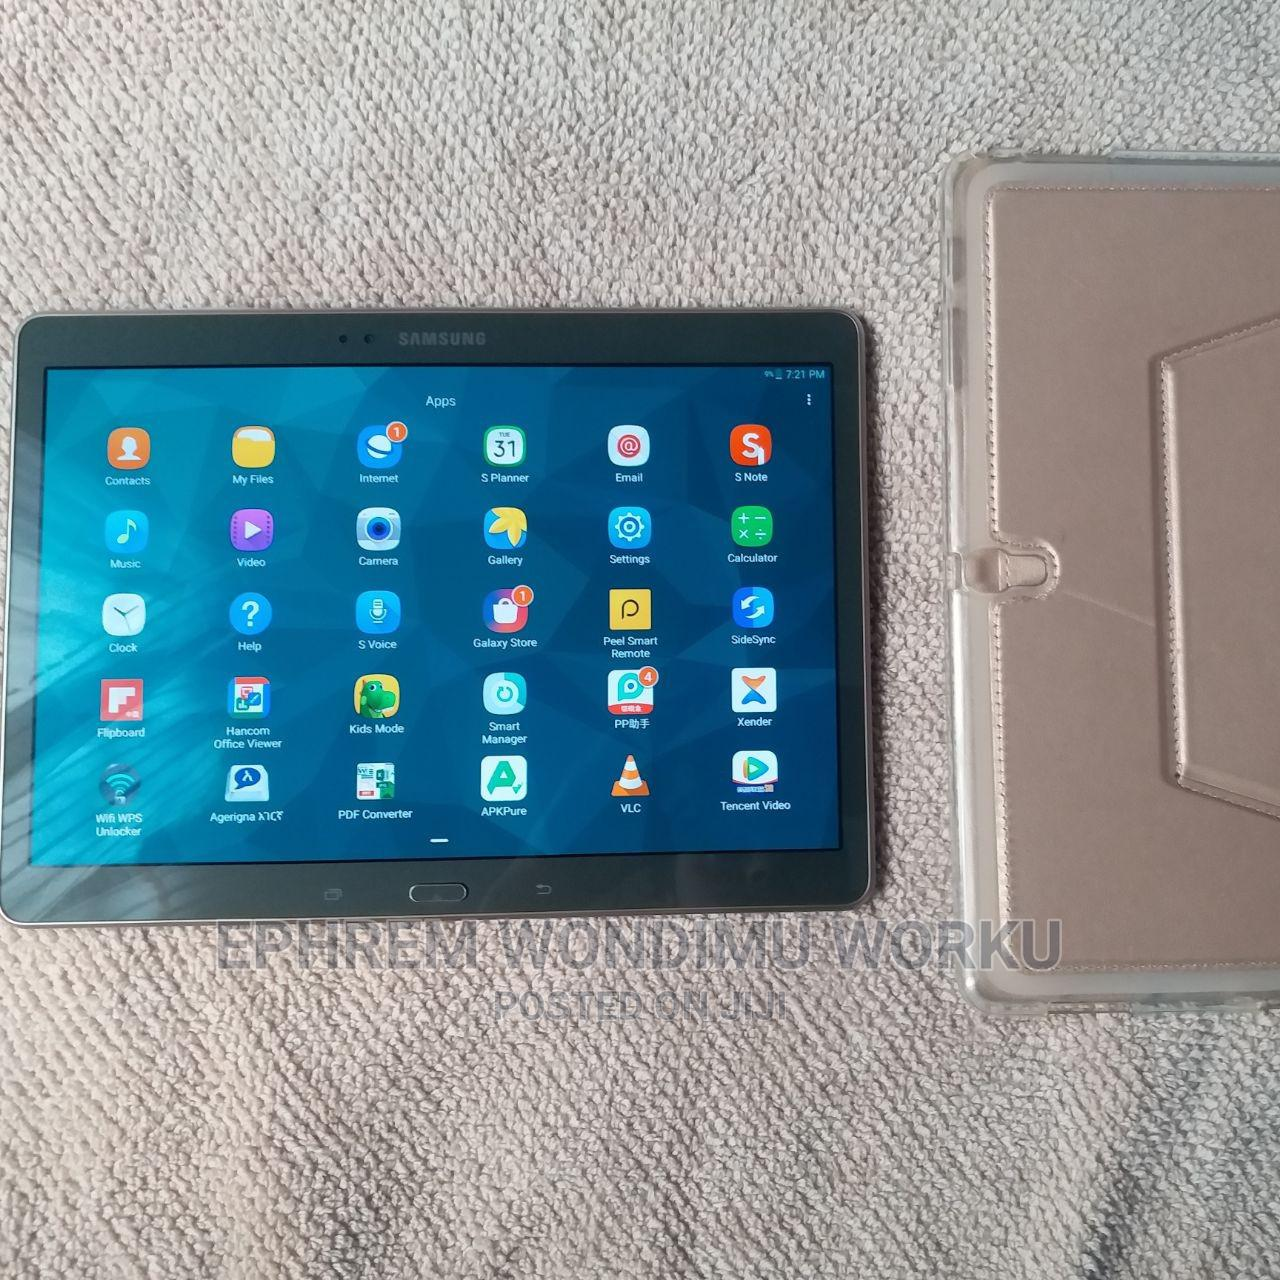 New Samsung Galaxy Tab S 10.5 LTE 16 GB | Tablets for sale in Nifas Silk-Lafto, Addis Ababa, Ethiopia